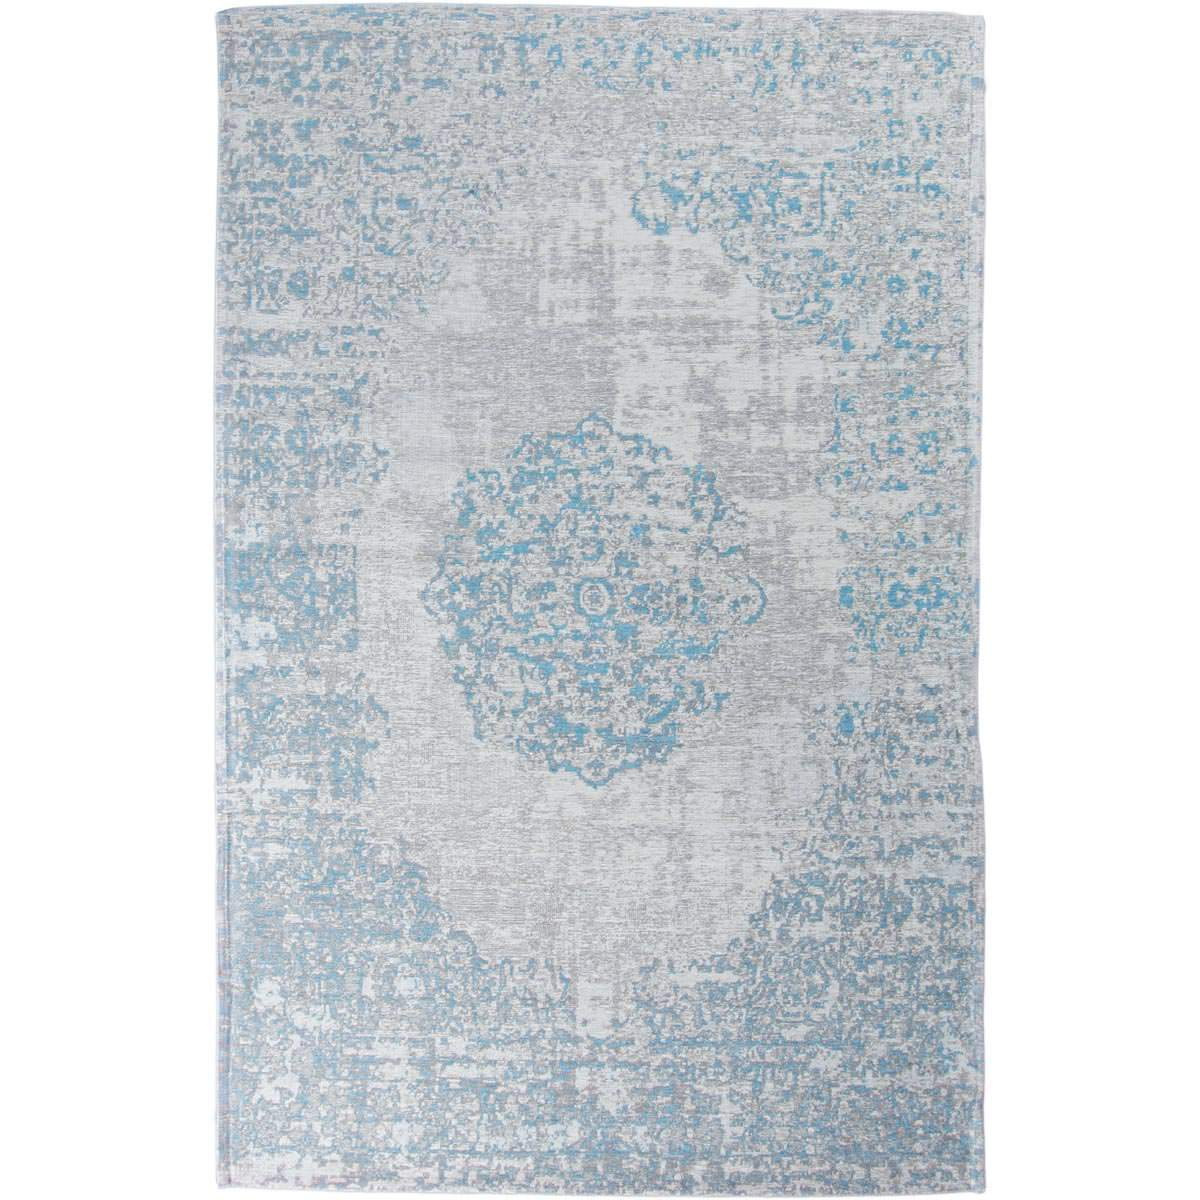 Marseille Rug 36 Light Blue 1